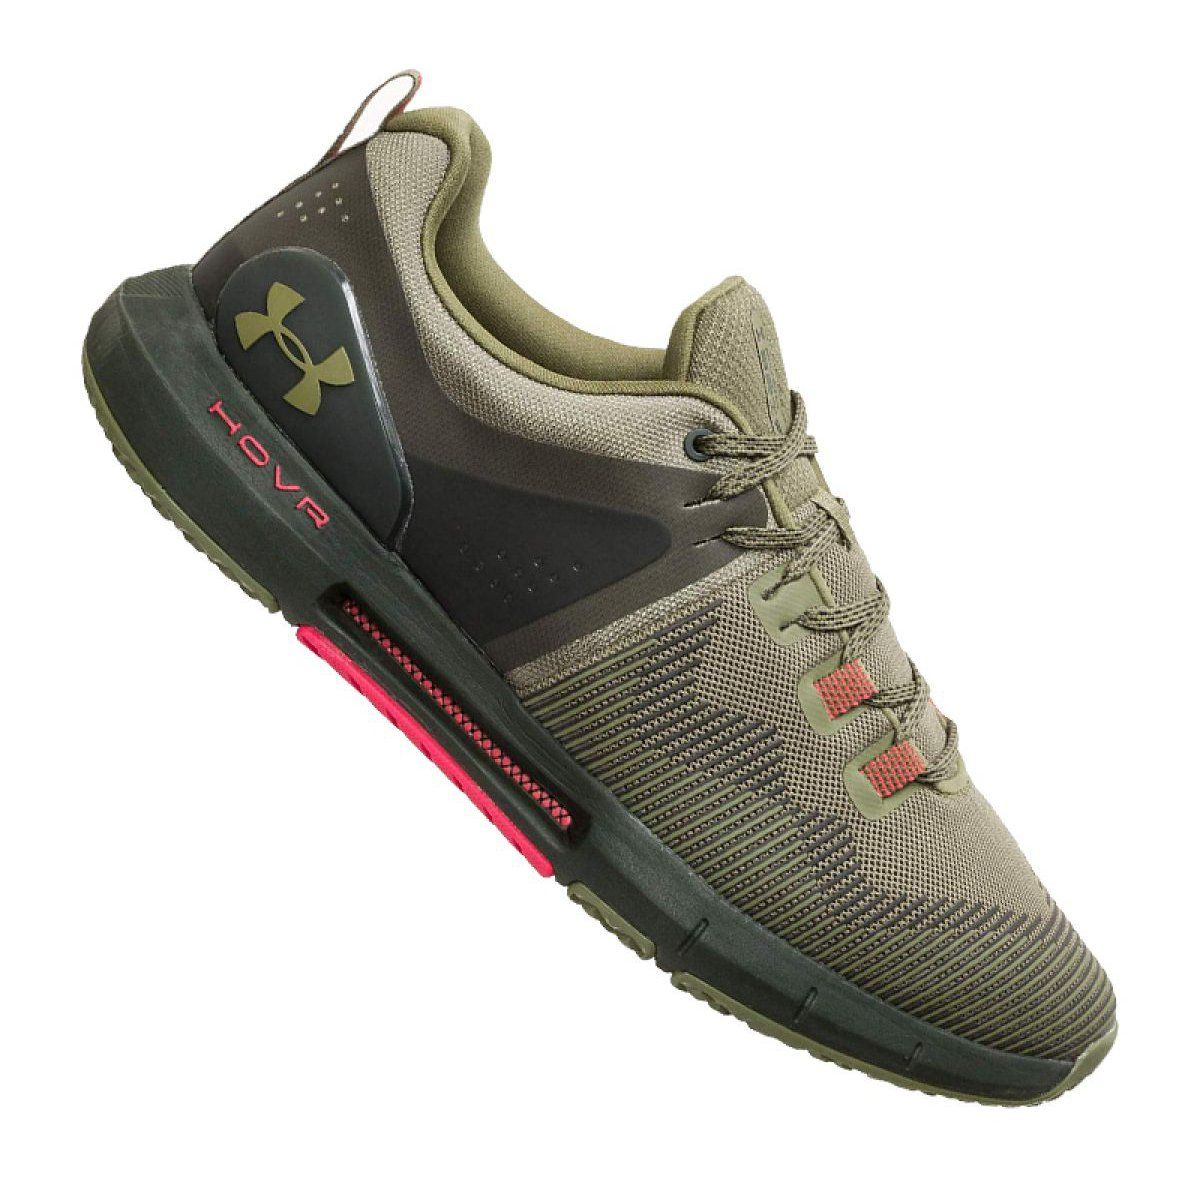 Buty Under Armour Hovr Rise M 3022025 301 Zielone Under Armor Shoes Under Armour